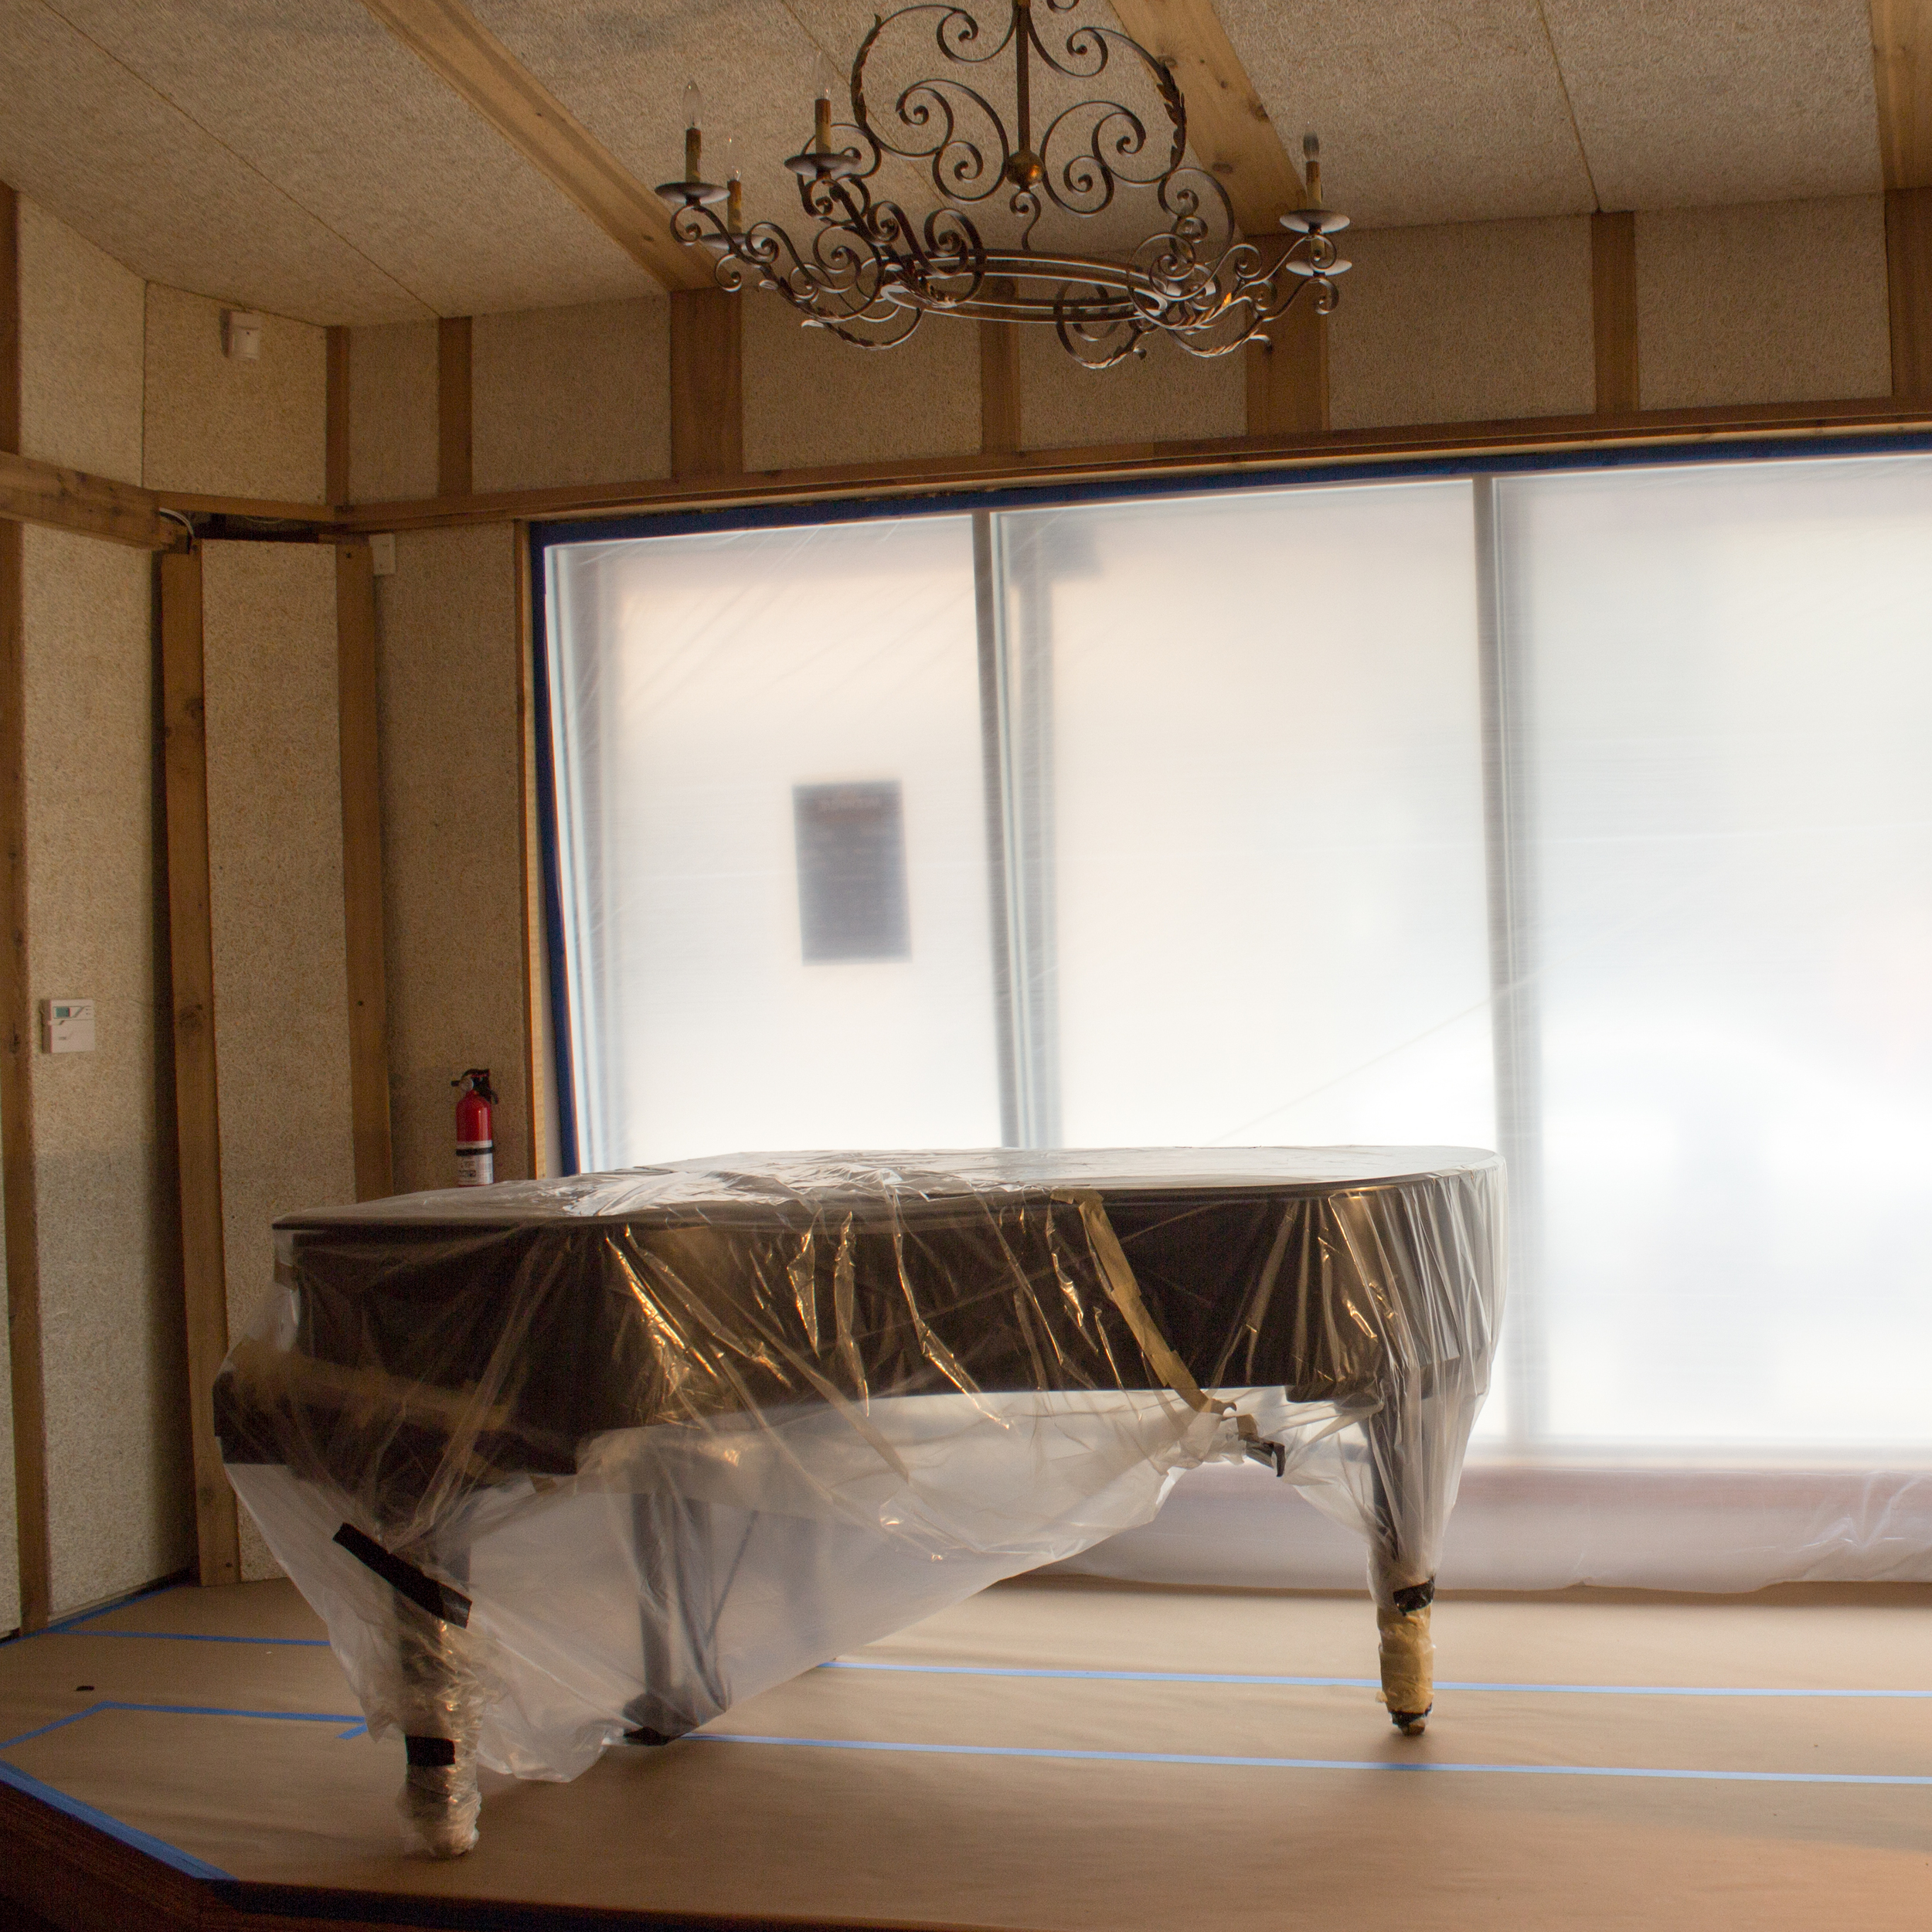 Studio grand is wrappedair-tight and ready to take on some serious dust.